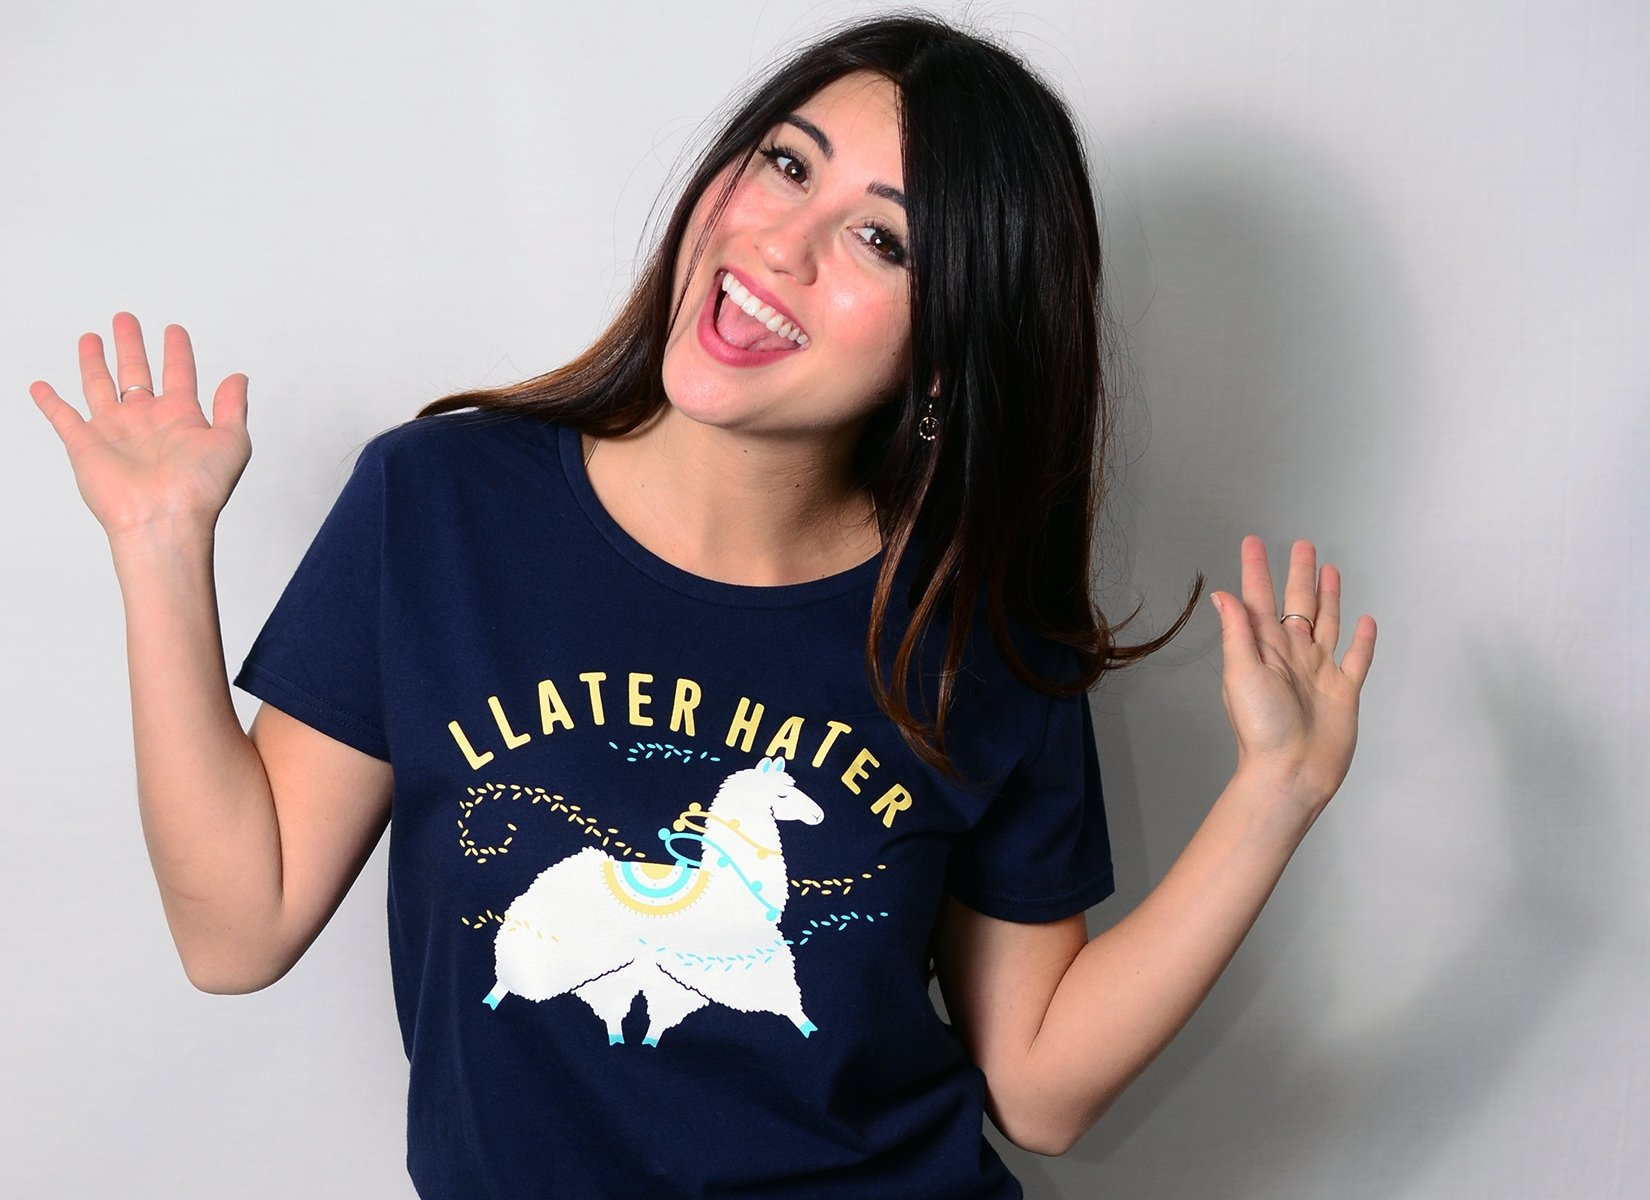 Llater Hater on Womens T-Shirt